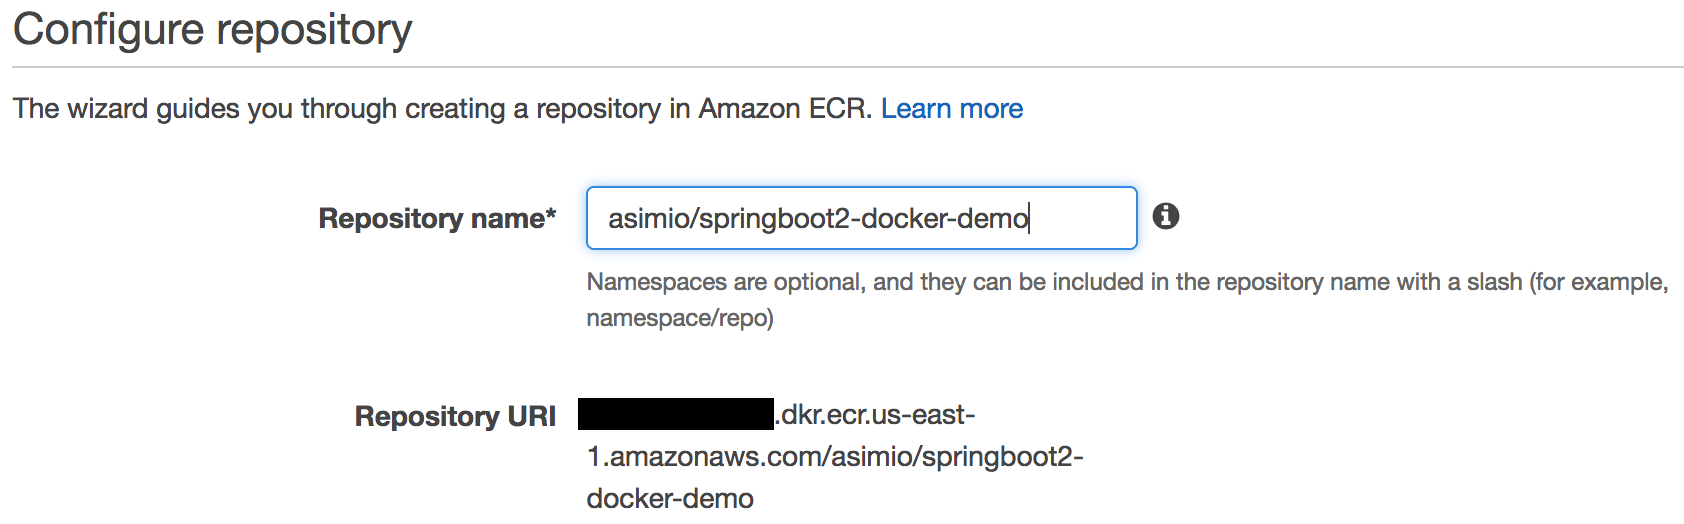 Create an AWS ECR repository - Configuration